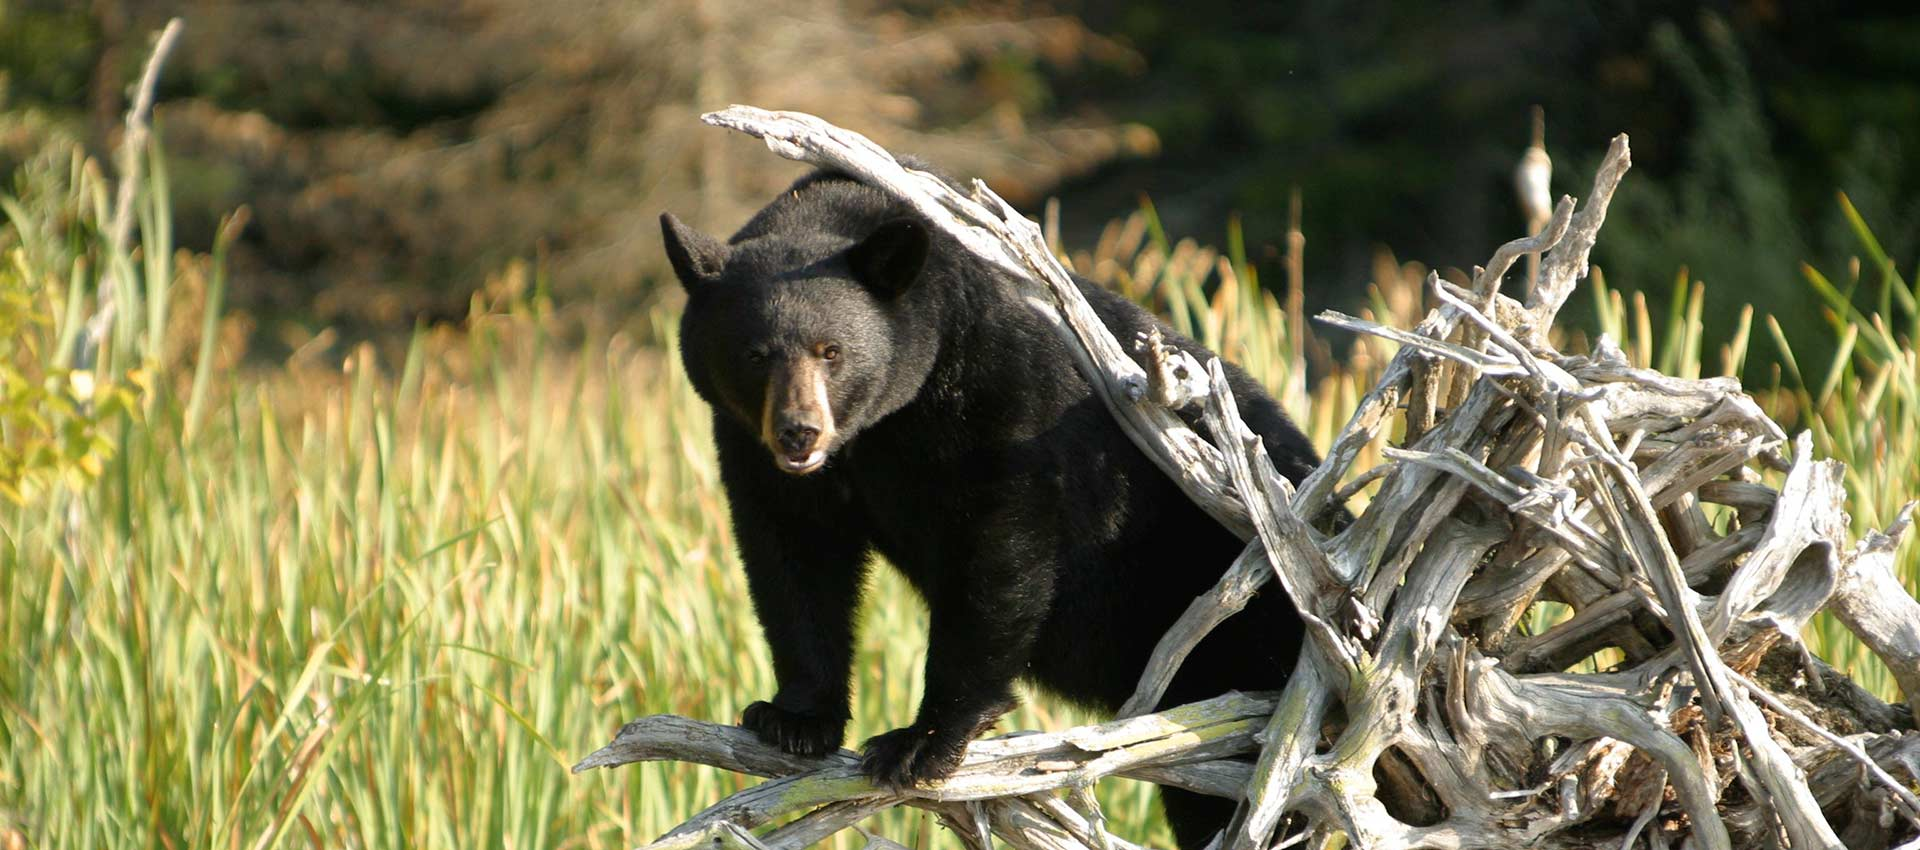 wildlife-photography-black-bear-header